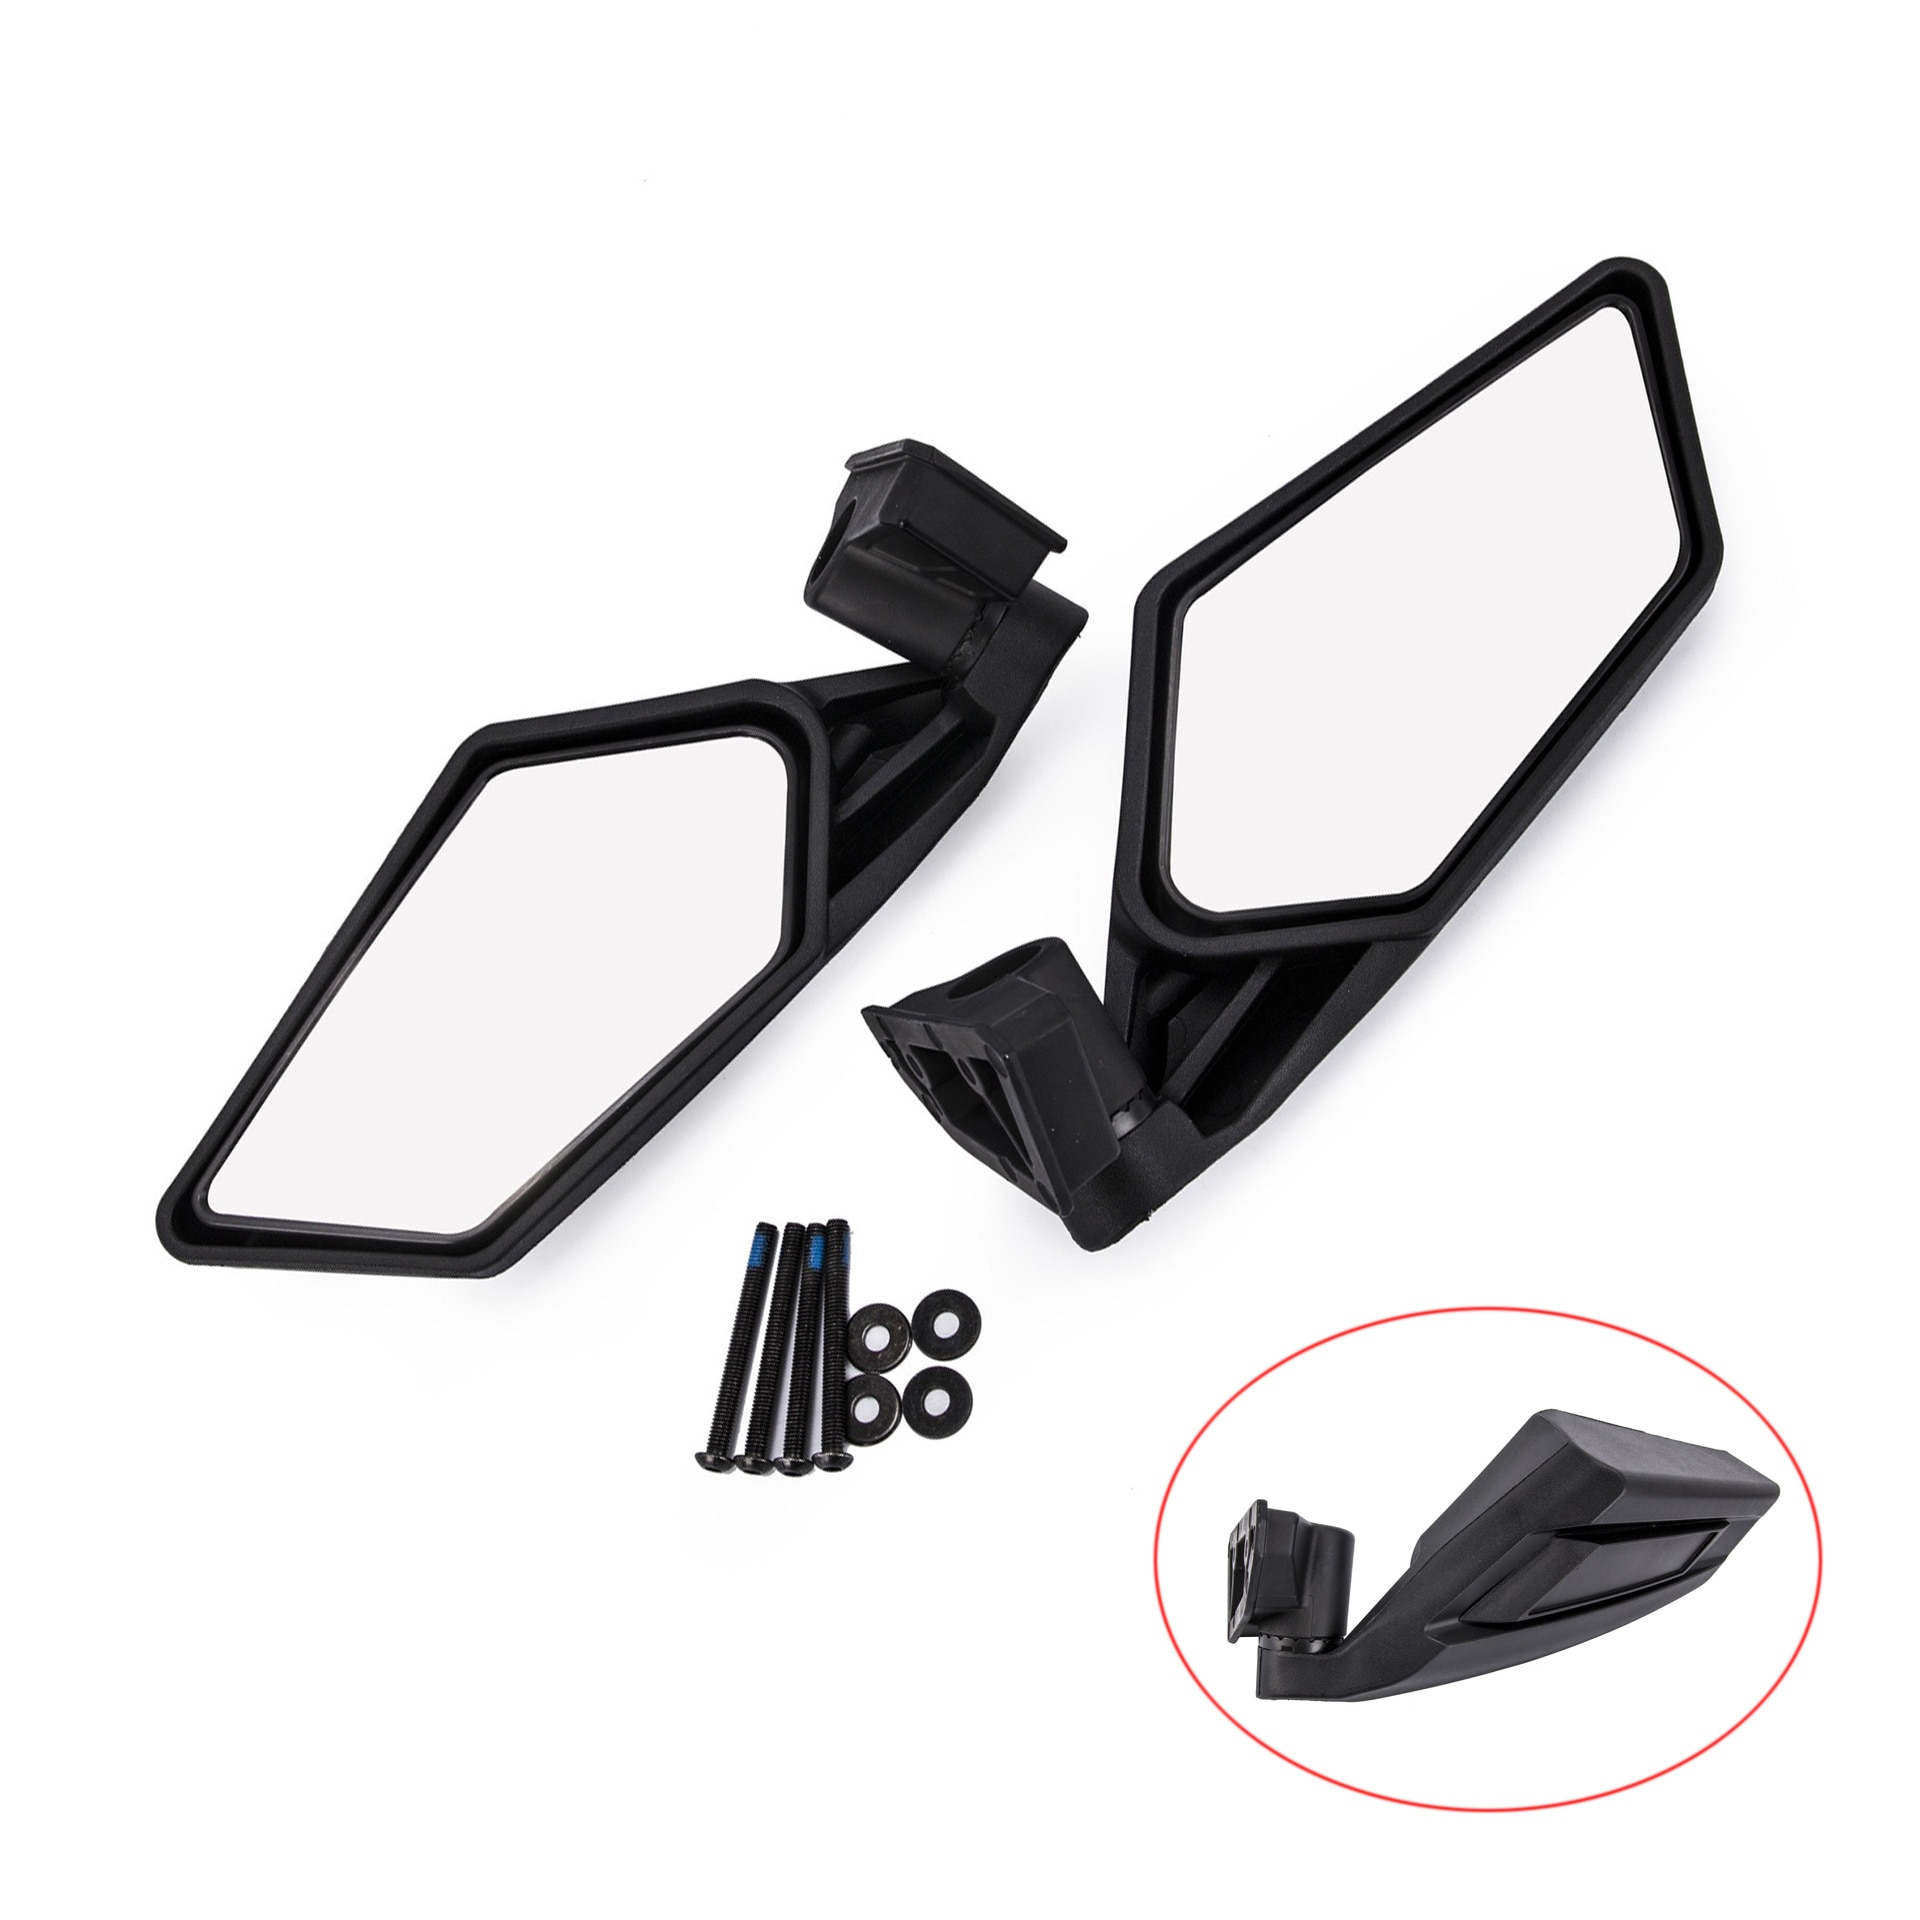 For Suzuki Quadracer 450 2006-2009 For Can Am Maverick X3 2017 2018 Motorcycle Adjustable UTV Rear View Mirrors Rearview mirror